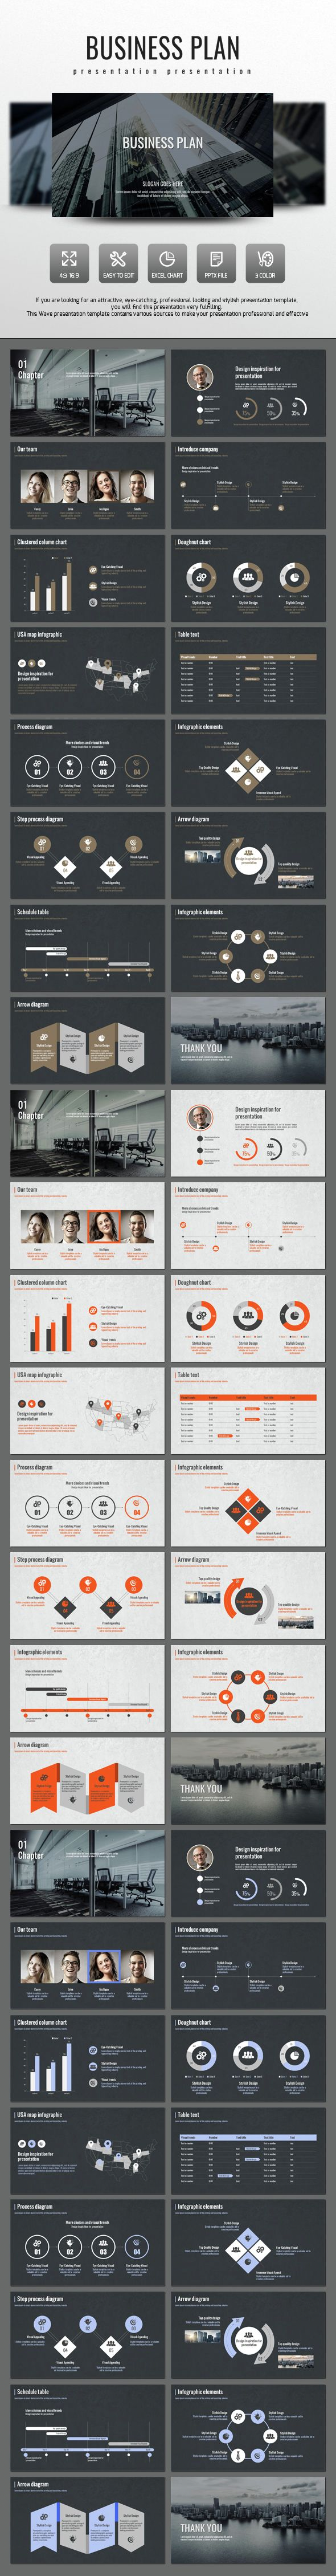 Business Plan PowerPoint Templates Pinterest Business Planning - Fresh powerpoint business plan template scheme